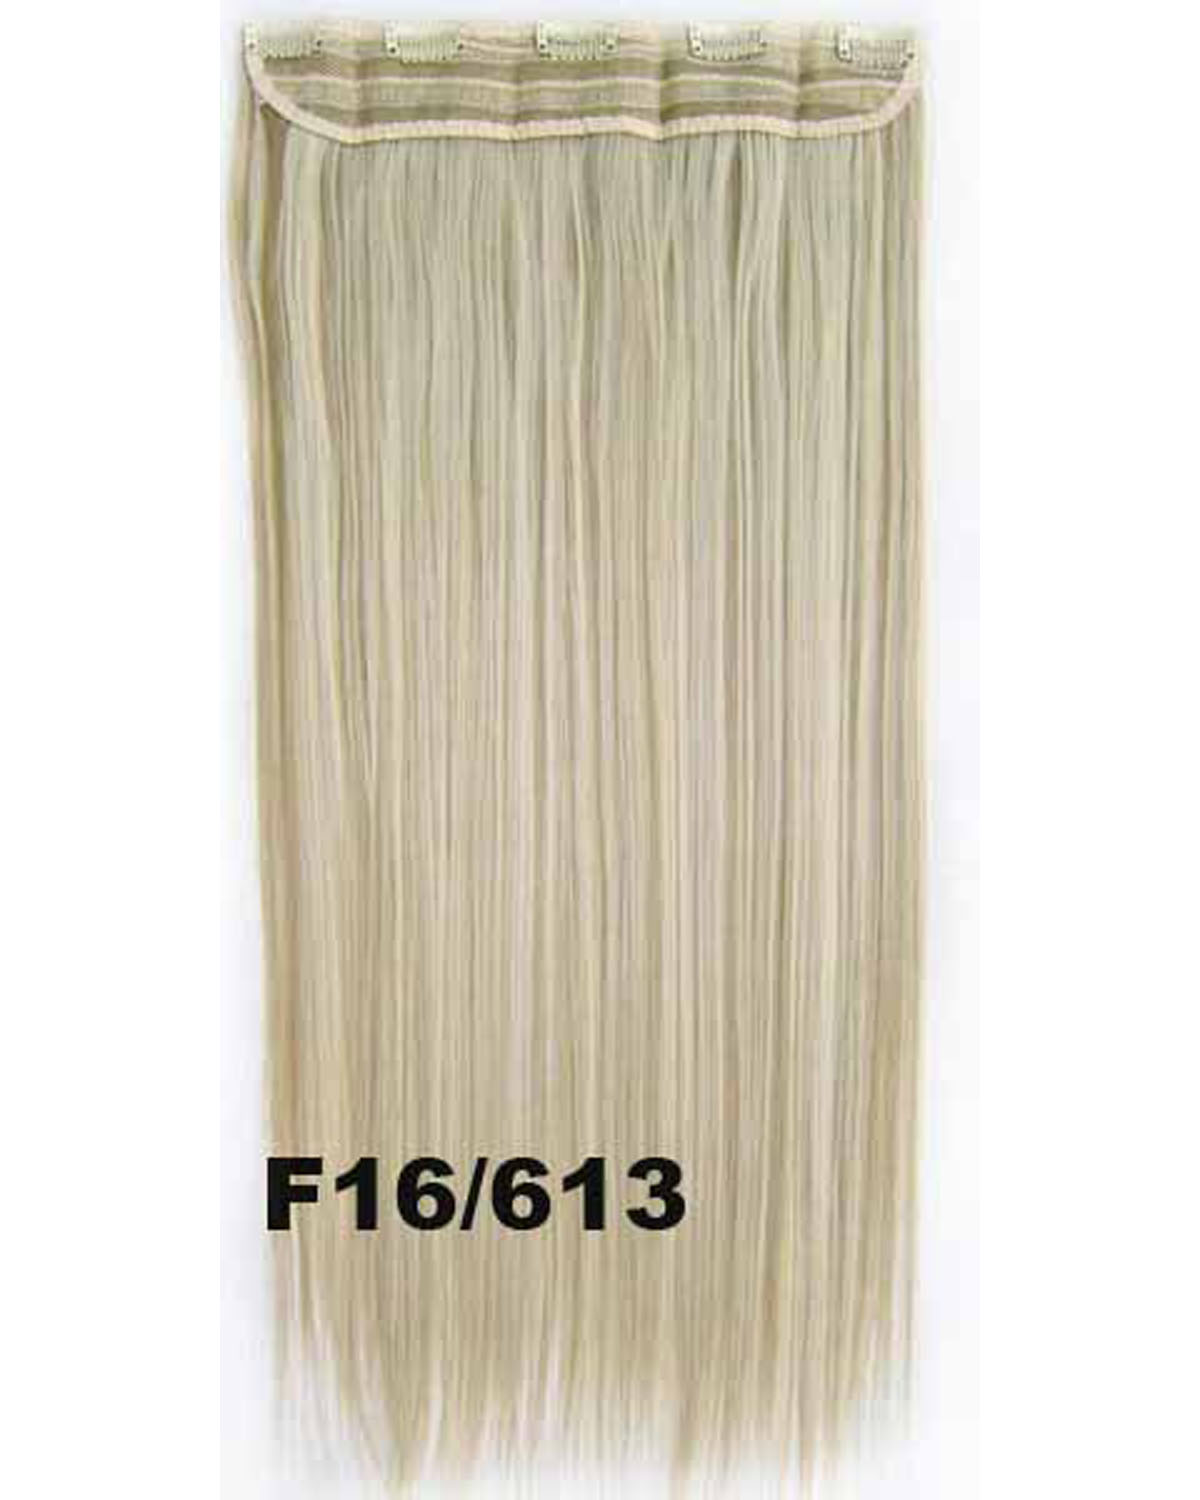 24 Inch Women Bewitching Straight Long One Piece 5 Clips Clip in Synthetic Hair Extension F16/613